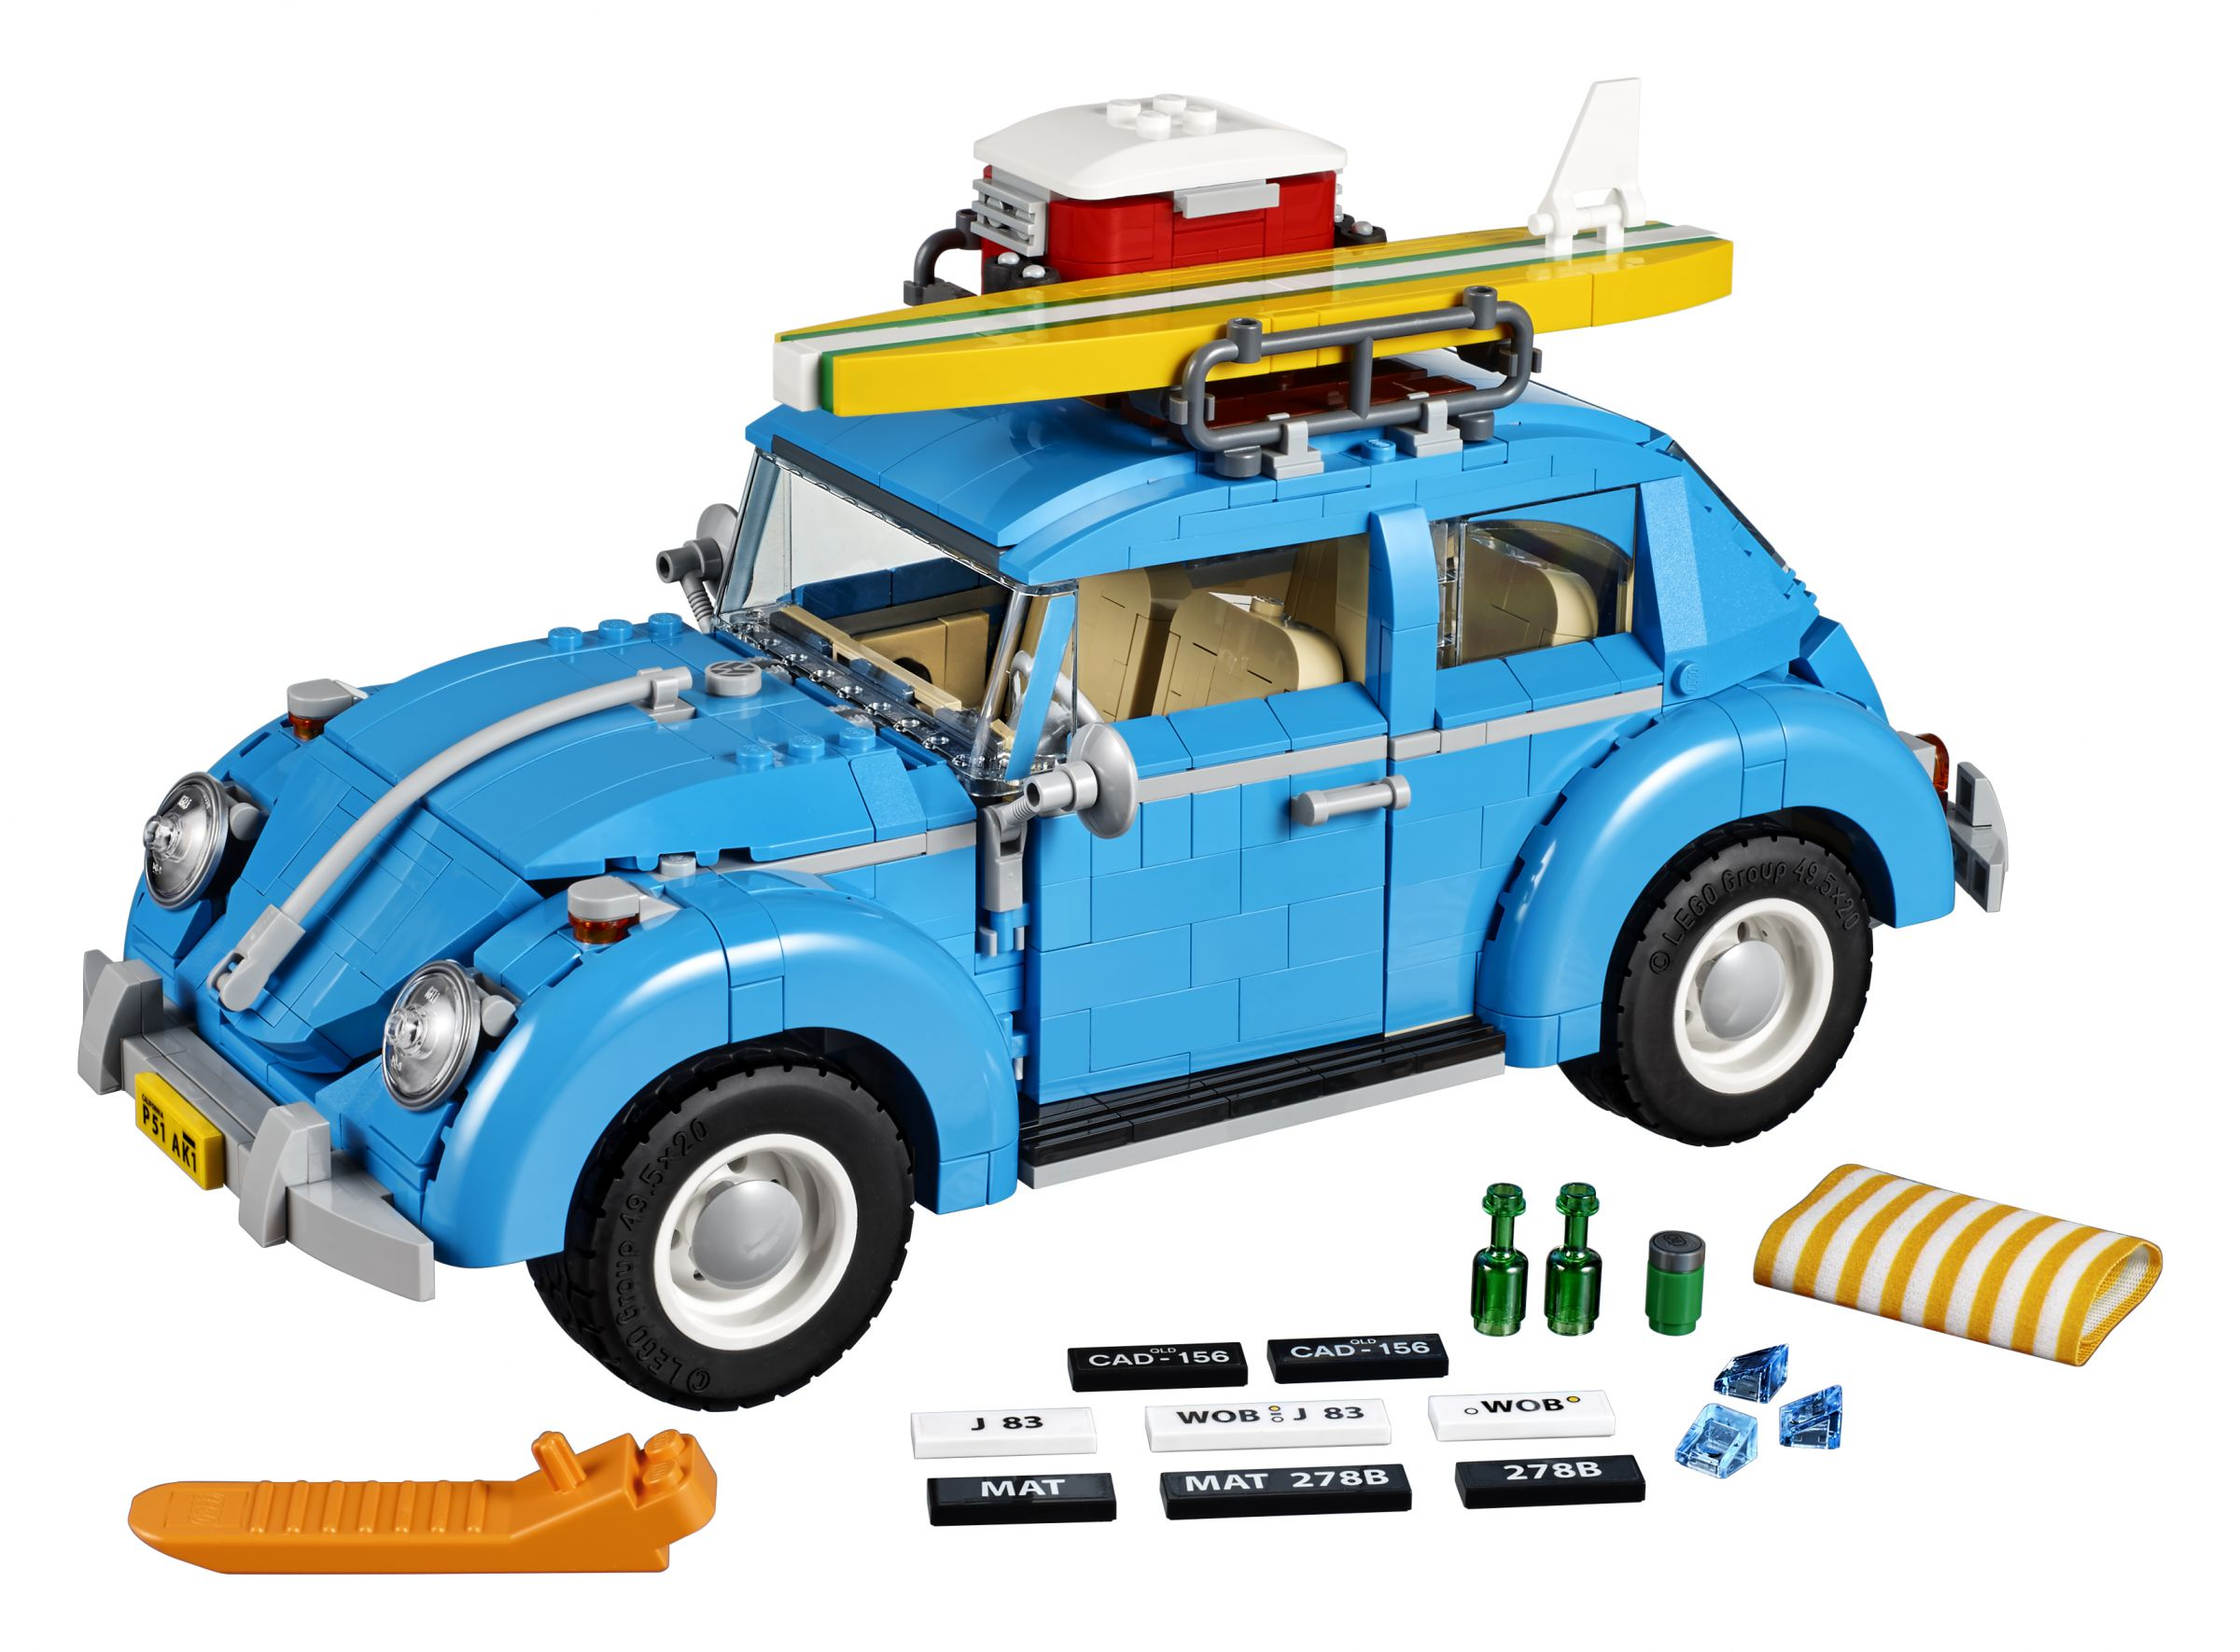 LEGO Advanced Models 10252 VW Käfer LEGO_10252_Volkswagen_Beetle_15.jpg